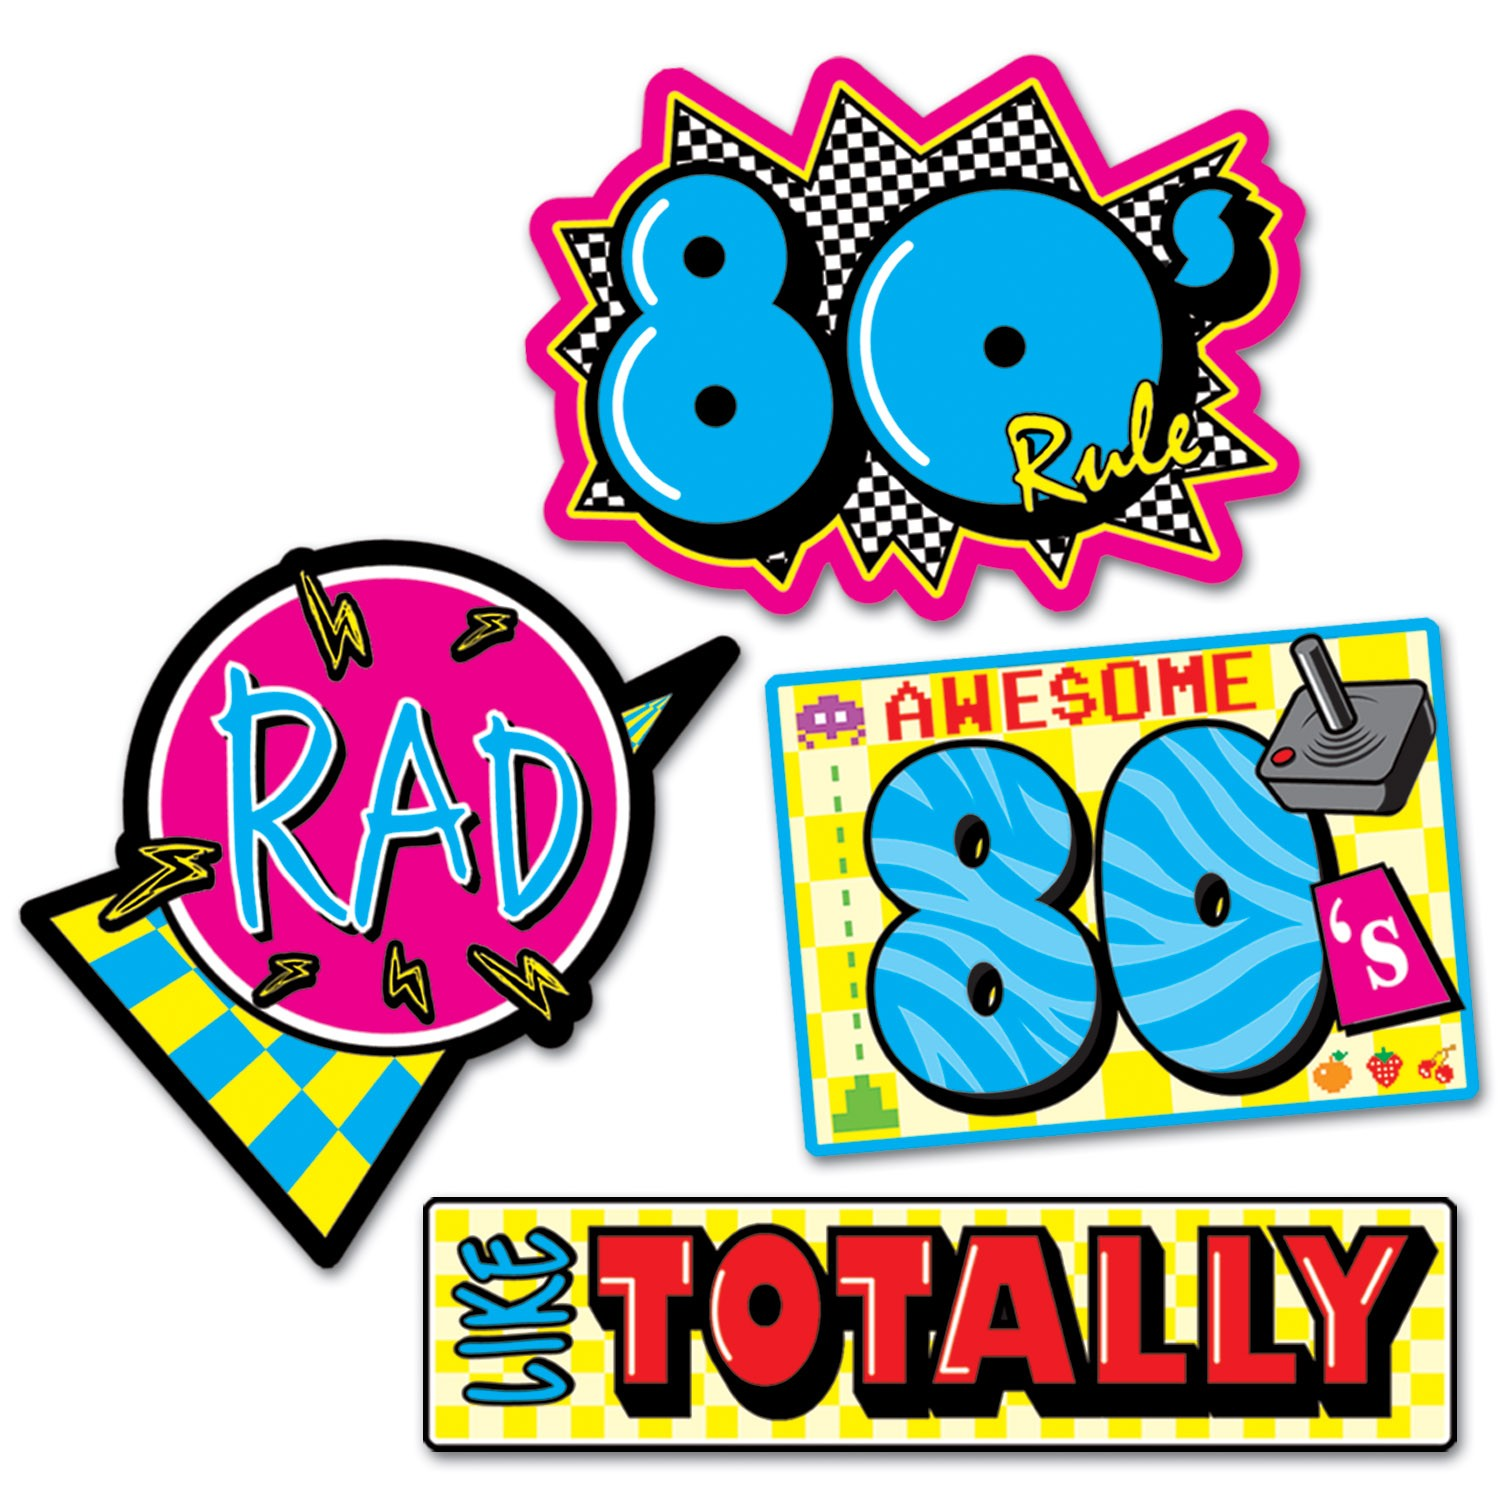 40 Best 1980's party images | 80s birthday parties, Themed ...